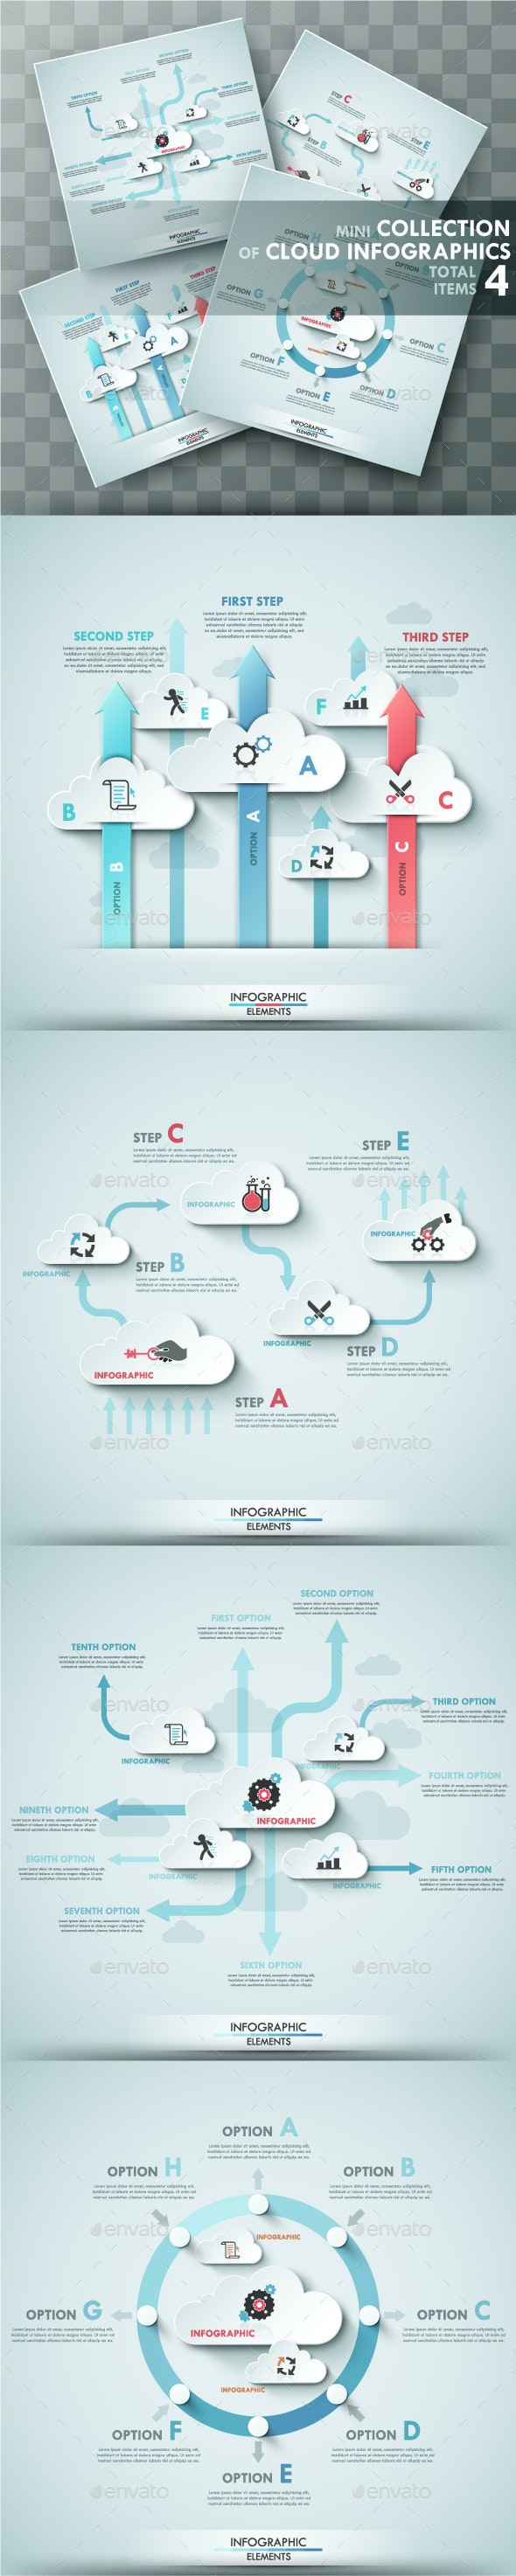 Set of 4 Infographic Templates With Clouds - Infographics